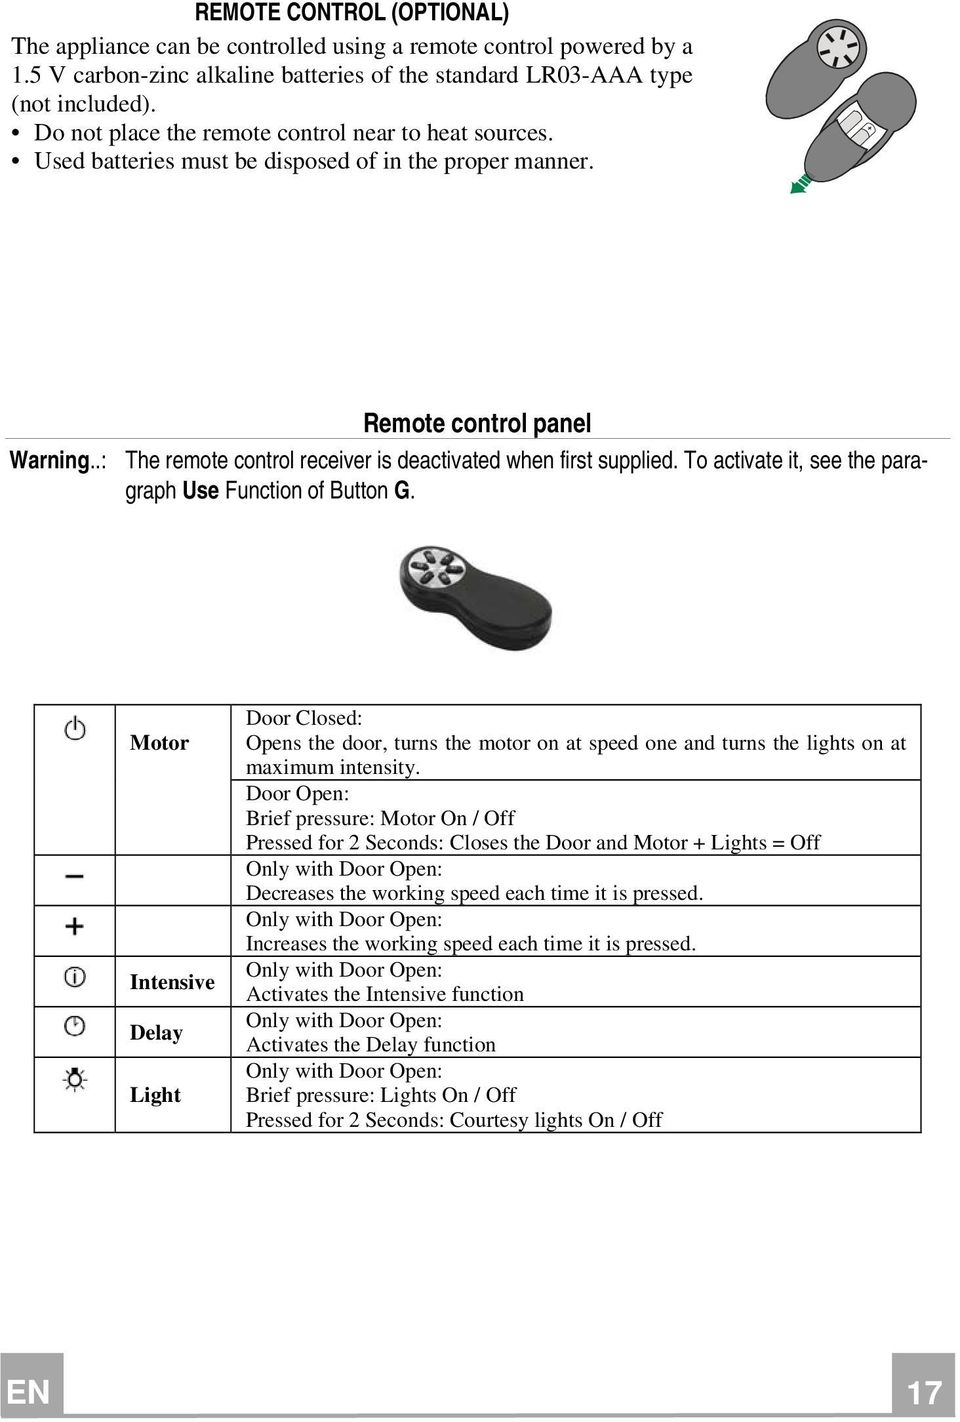 .: The remote control receiver is deactivated when first supplied. To activate it, see the paragraph Use Function of Button G.